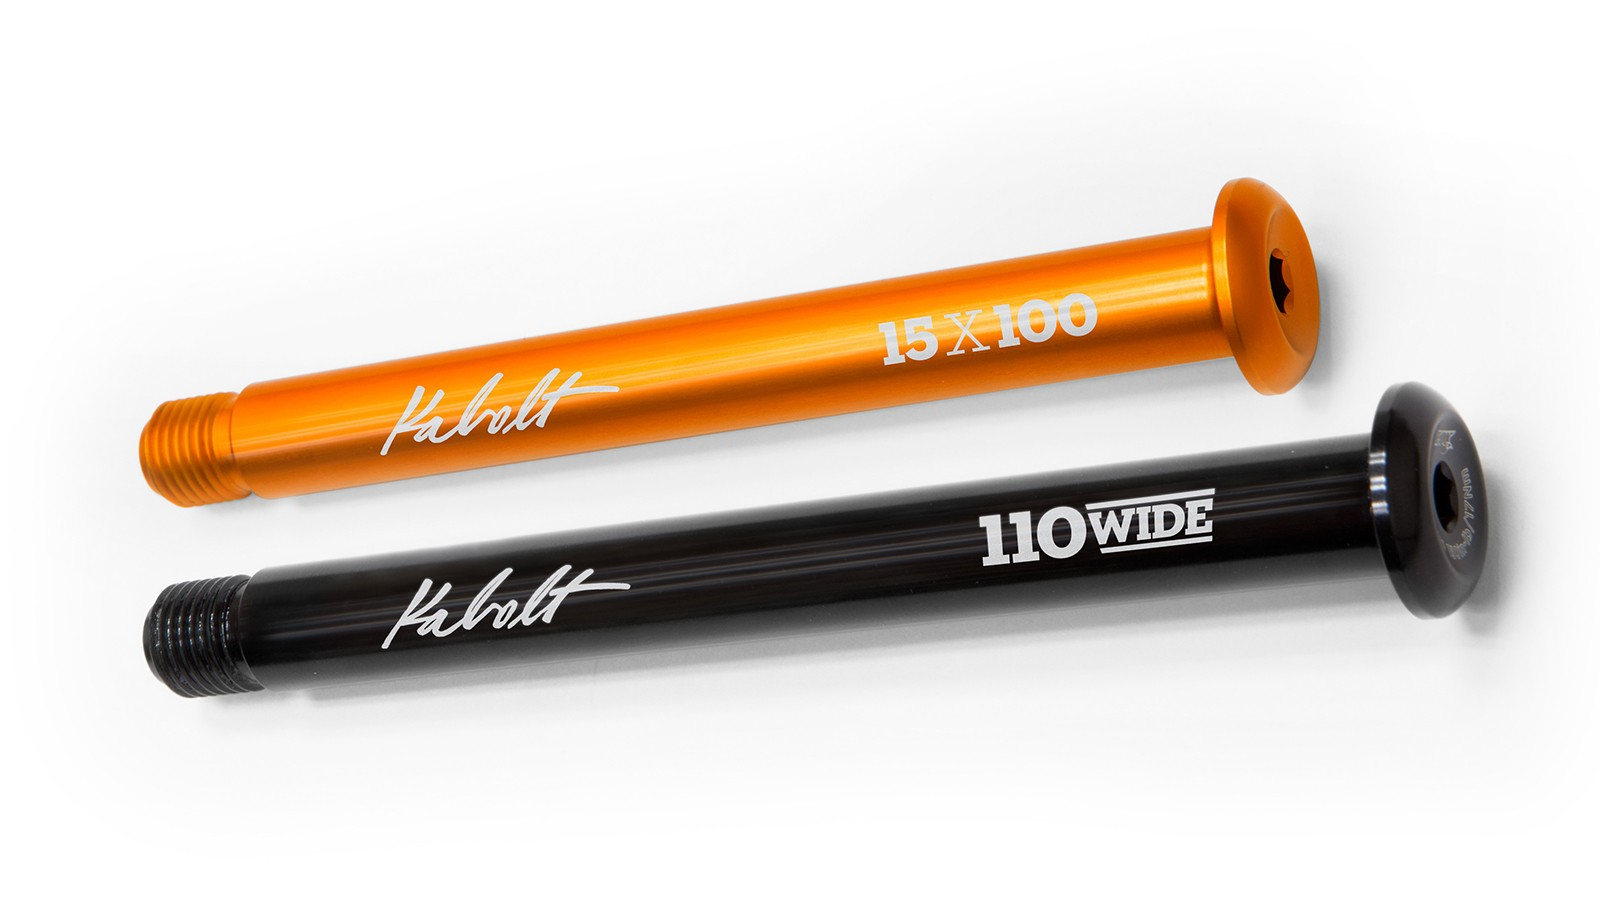 The pro-only Kabolt bolt-on axle will soon be available to the masses